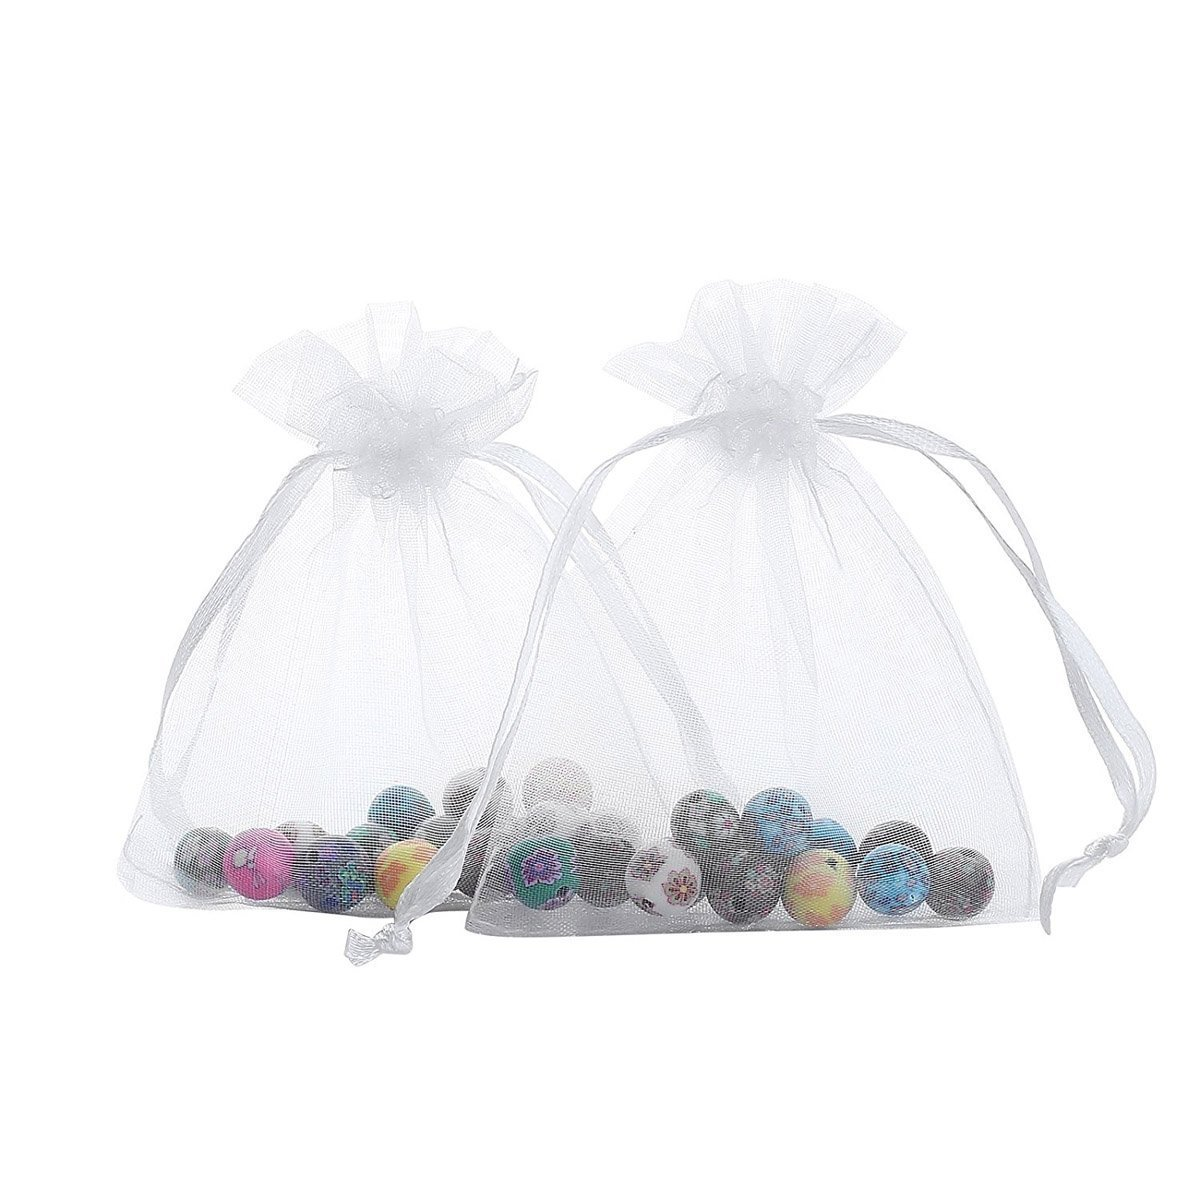 Jofeel 50PCS Drawstring Organza Jewelry Candy Pouch Small Wedding Party Favor Gift Packing Bags Royal Blue, 7.5x12